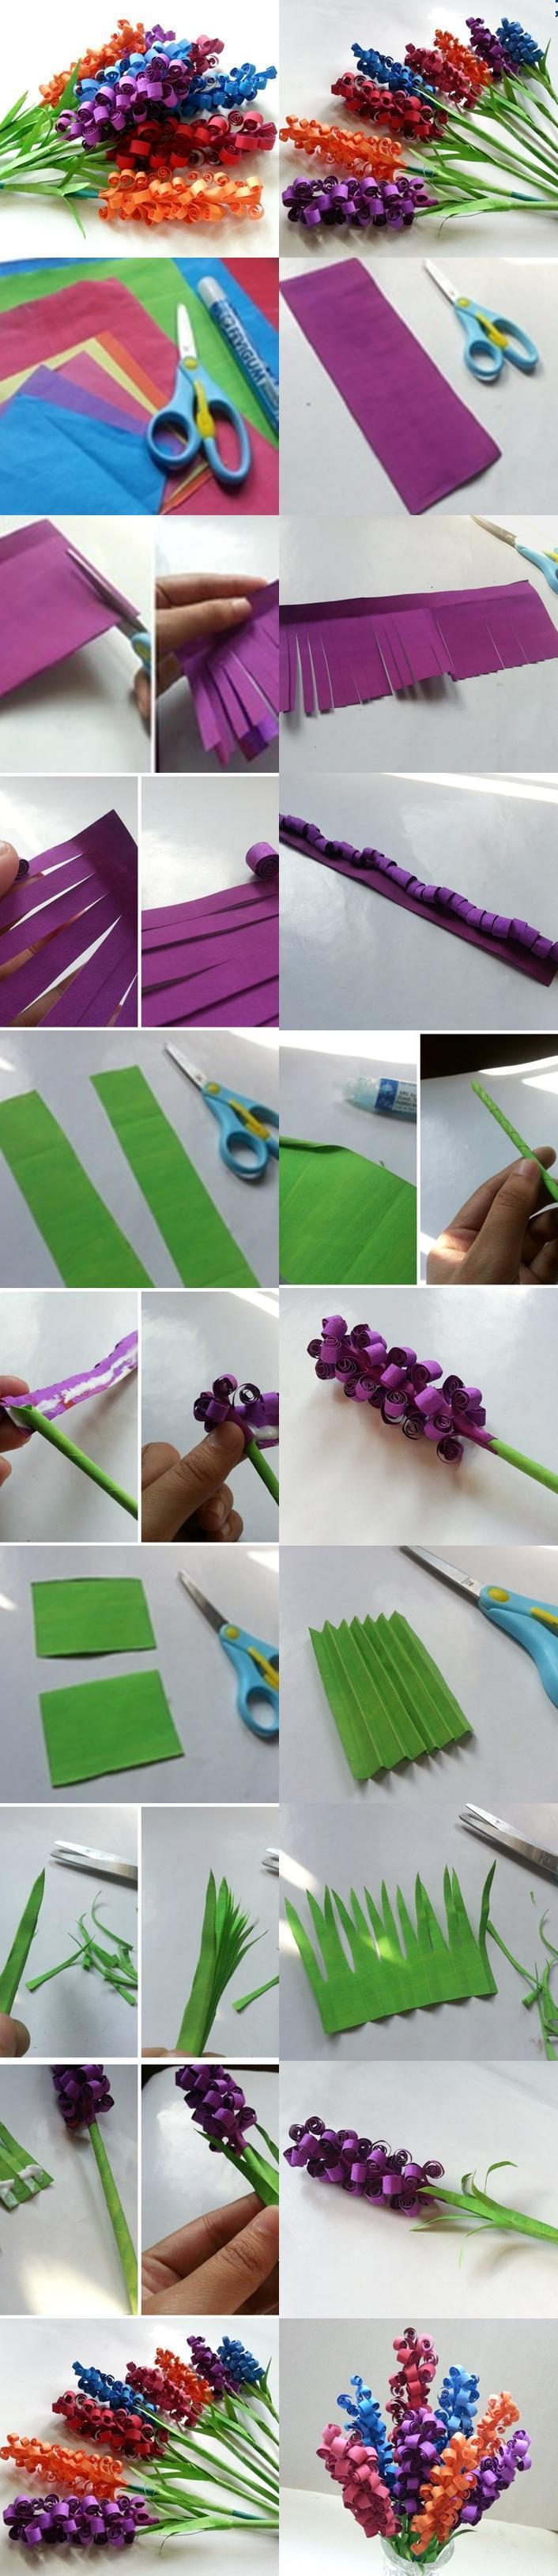 diy-swirly-paper-flowers.jpg